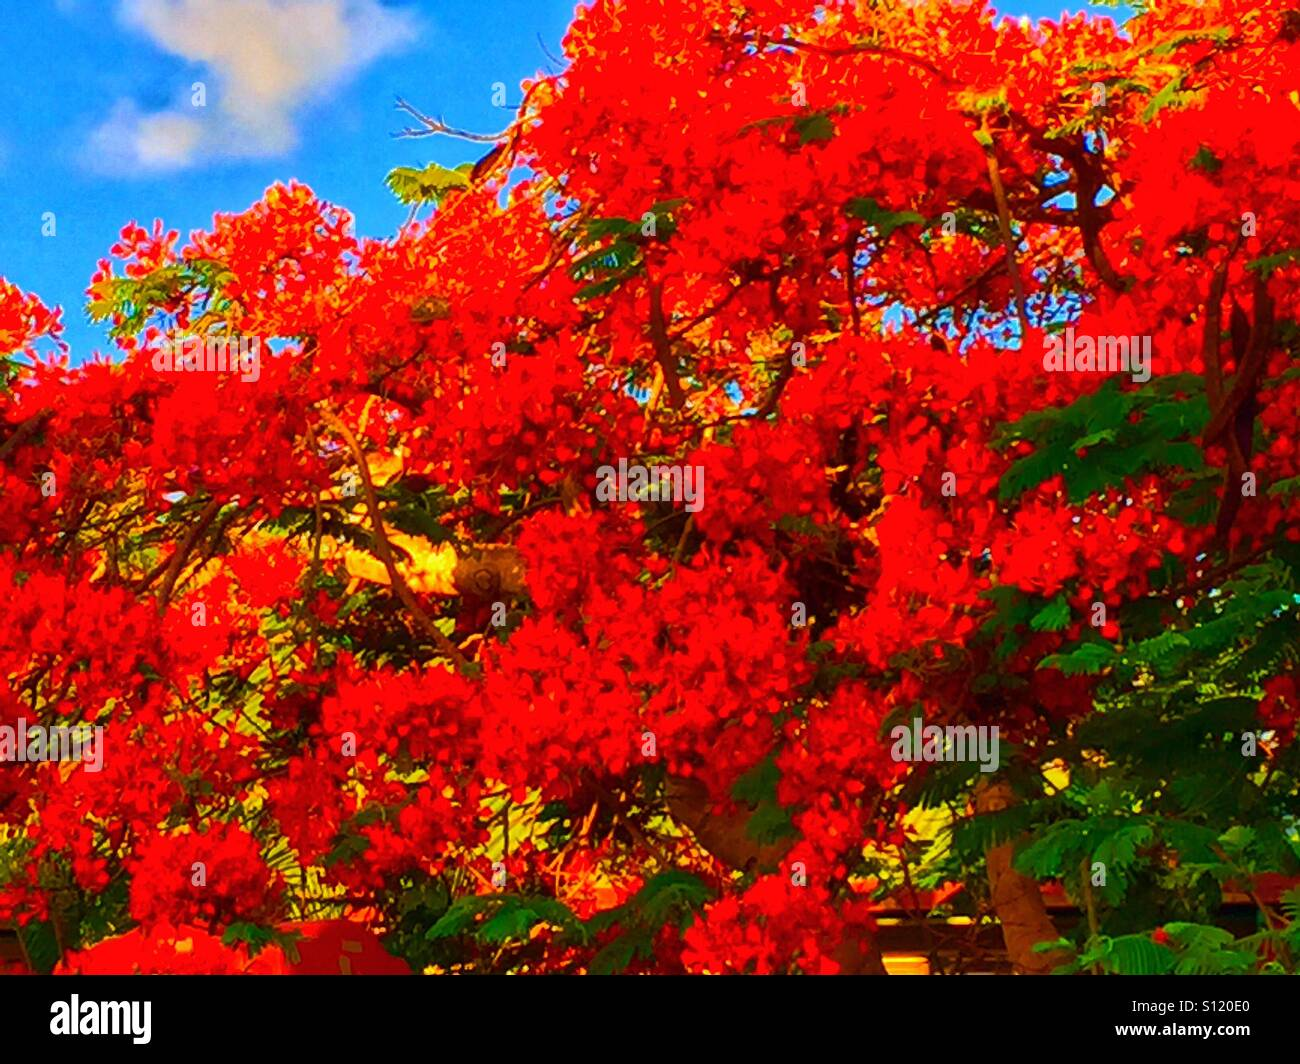 Poinciana tree in bloom - Stock Image